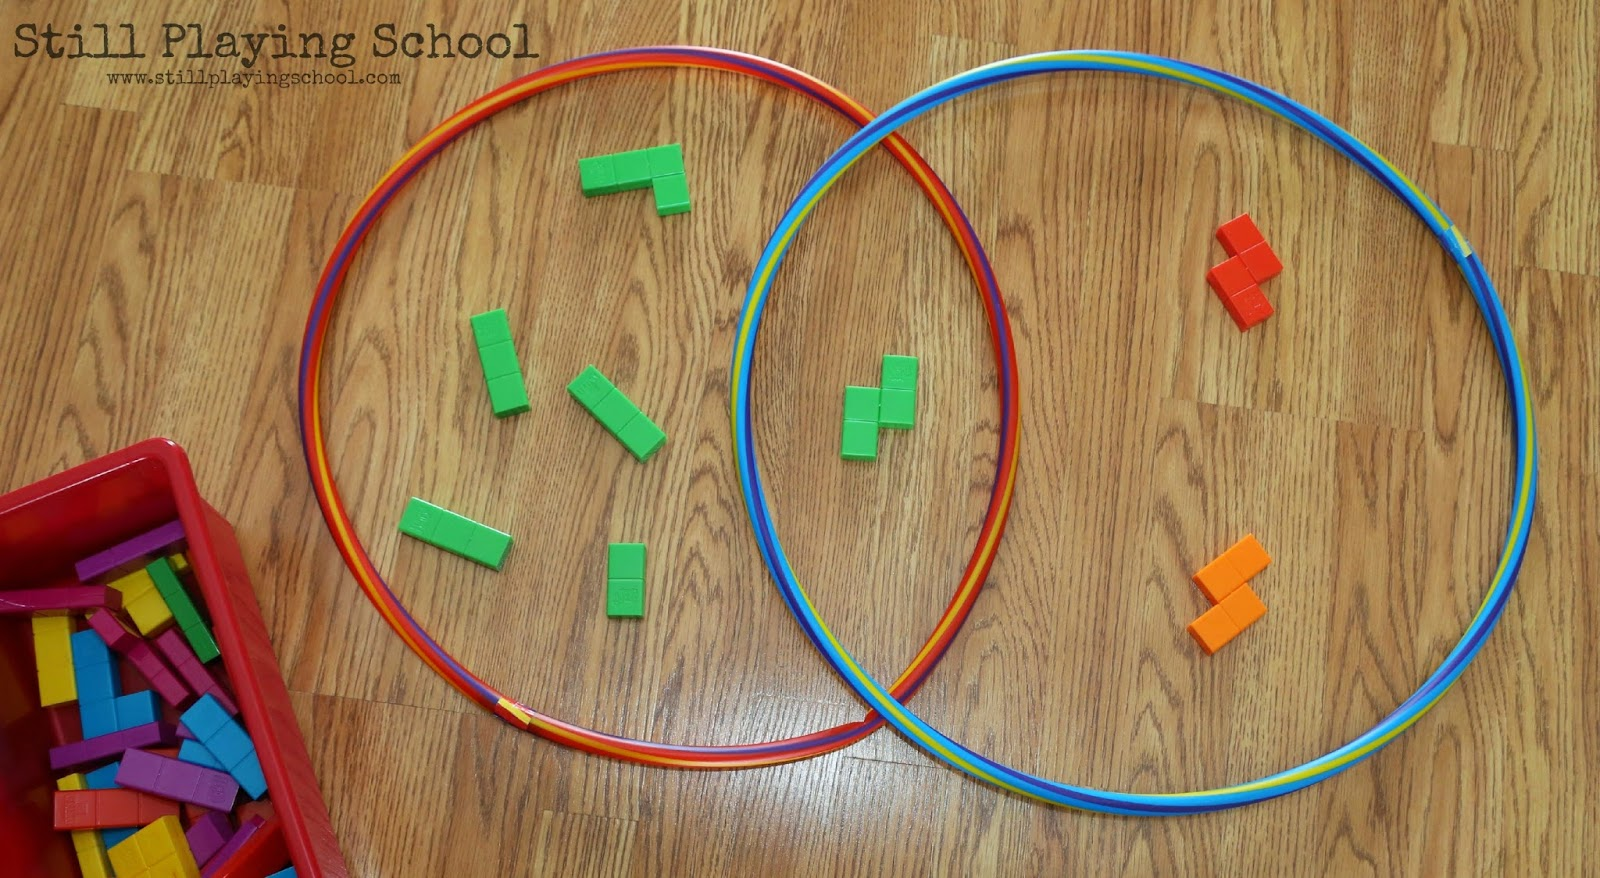 Venn Diagram Sorting Games Code Alarm Wiring Hula Hoop Still Playing School